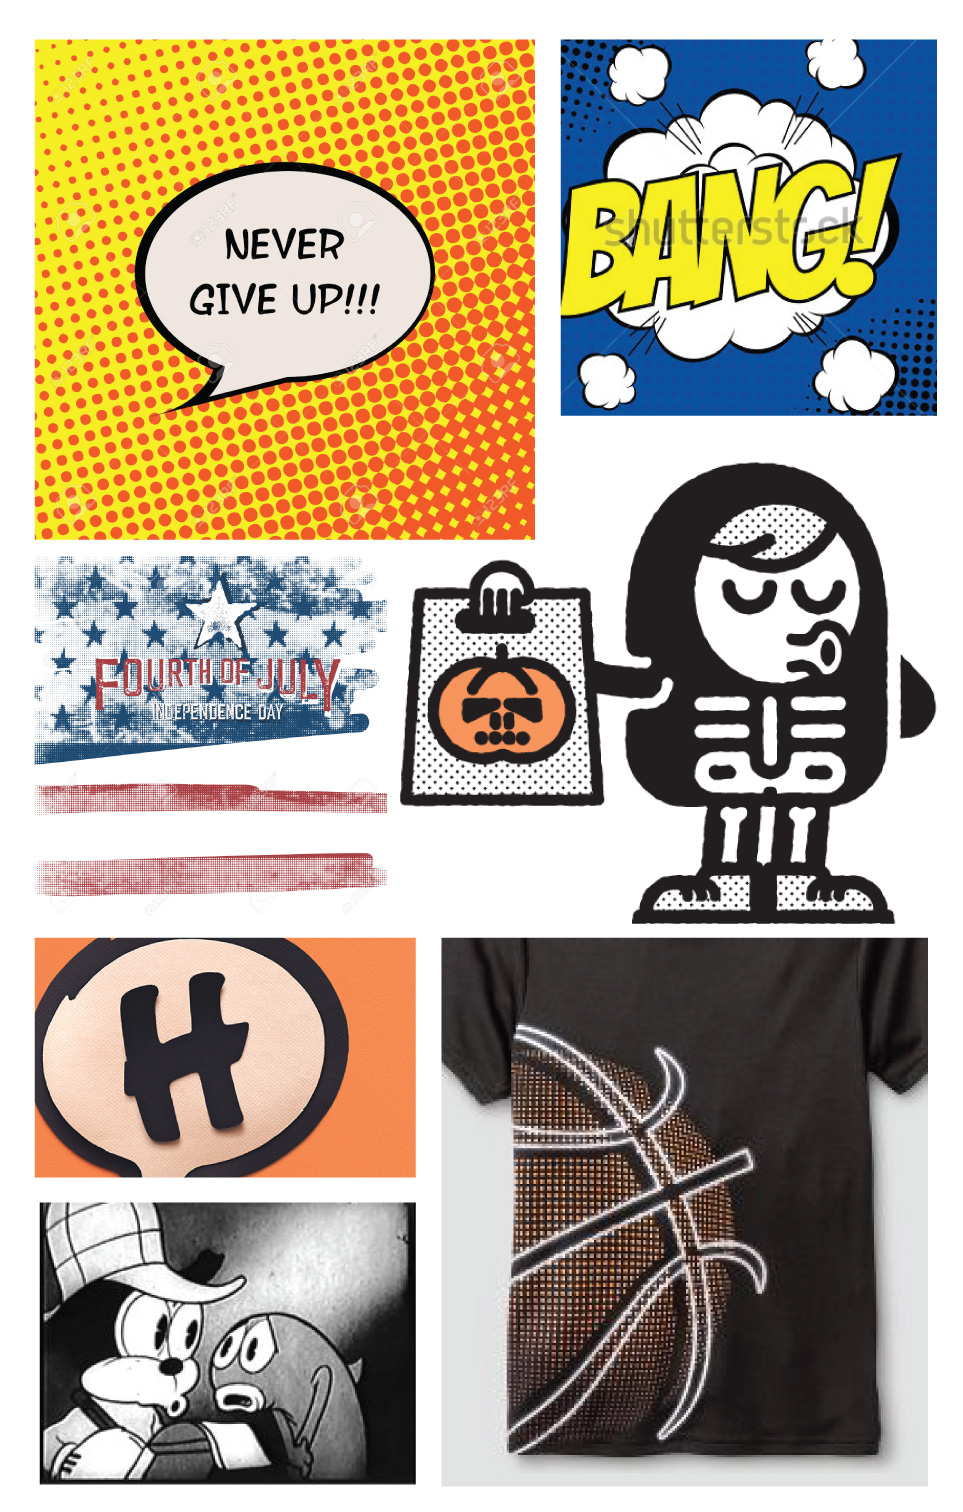 Moodboard-startup-graphic-design-pop-art-columbus.jpg